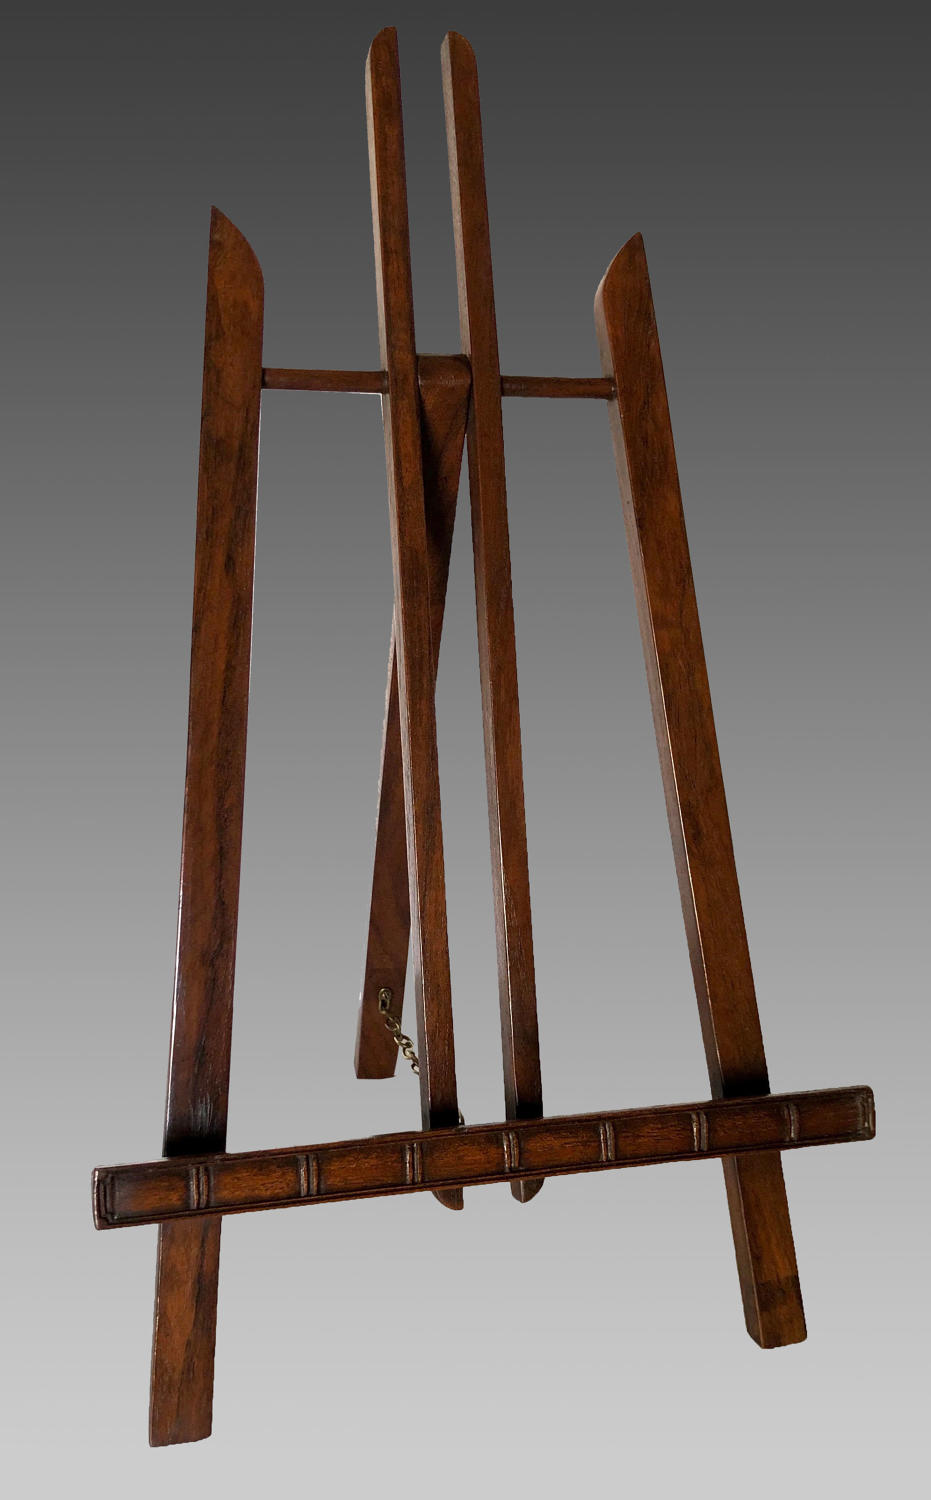 Antique oriental hardwood table display stand